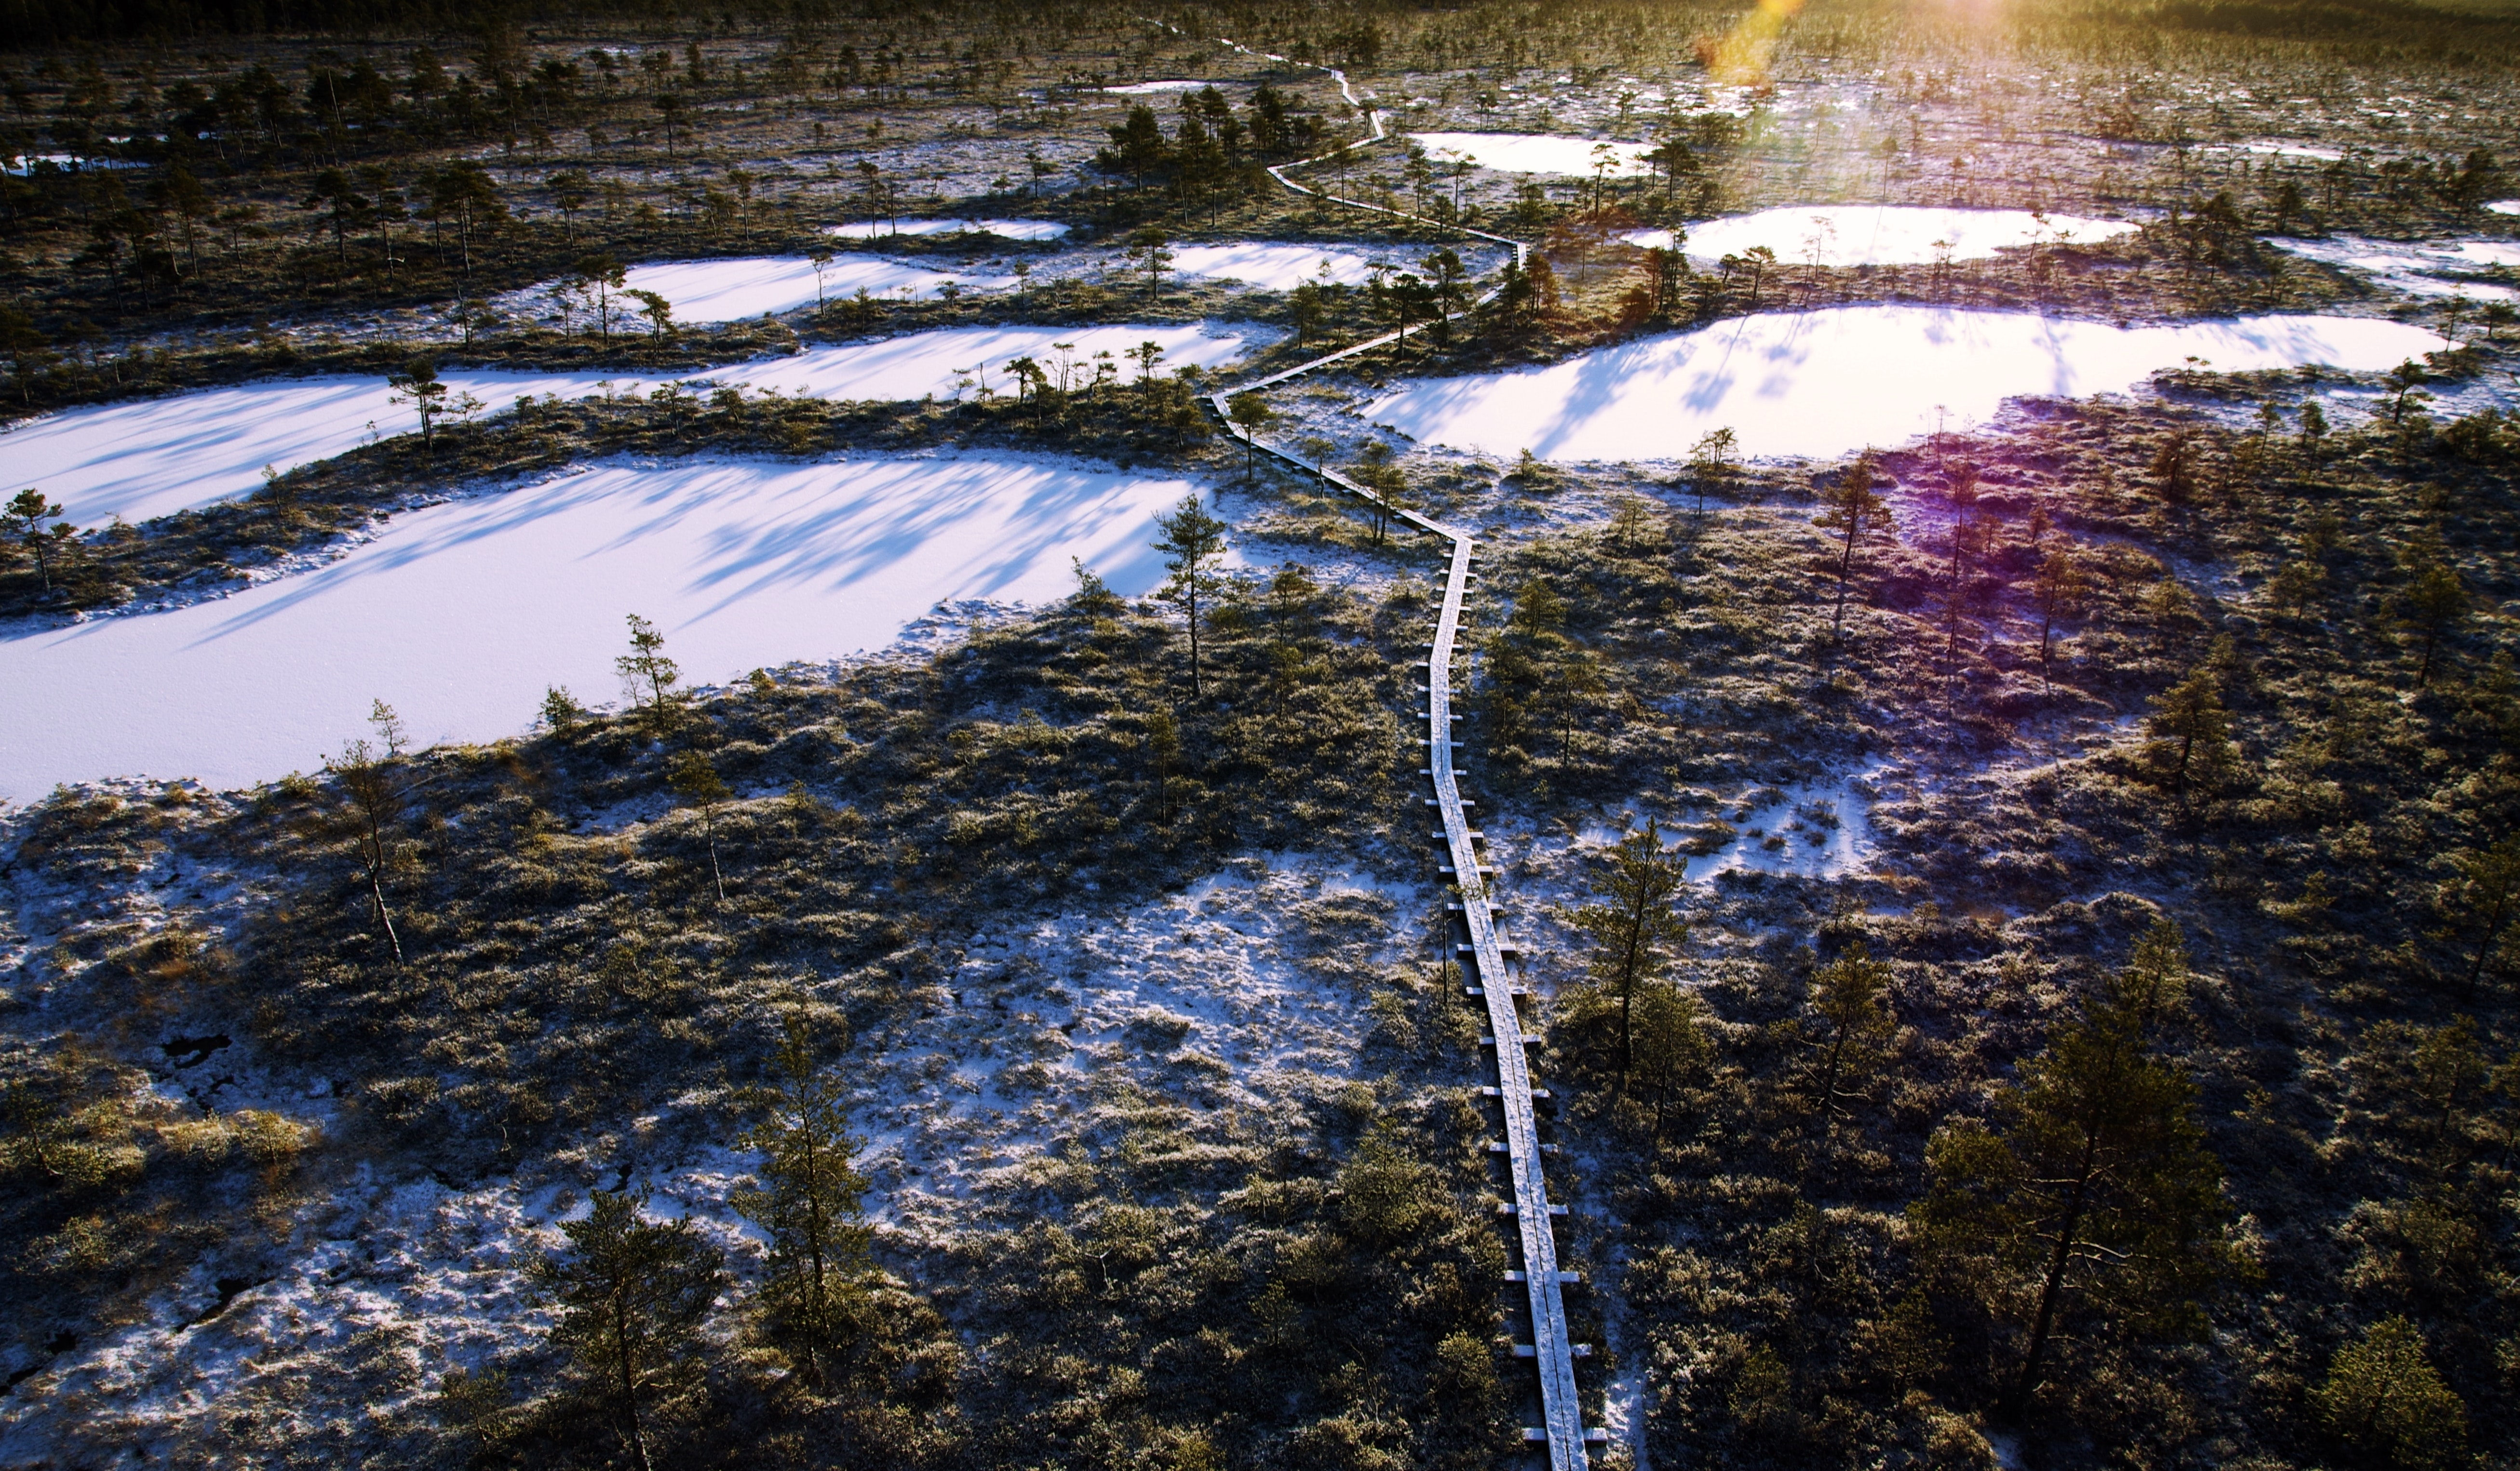 Aerial photo of frozen lakes surrounded by trees